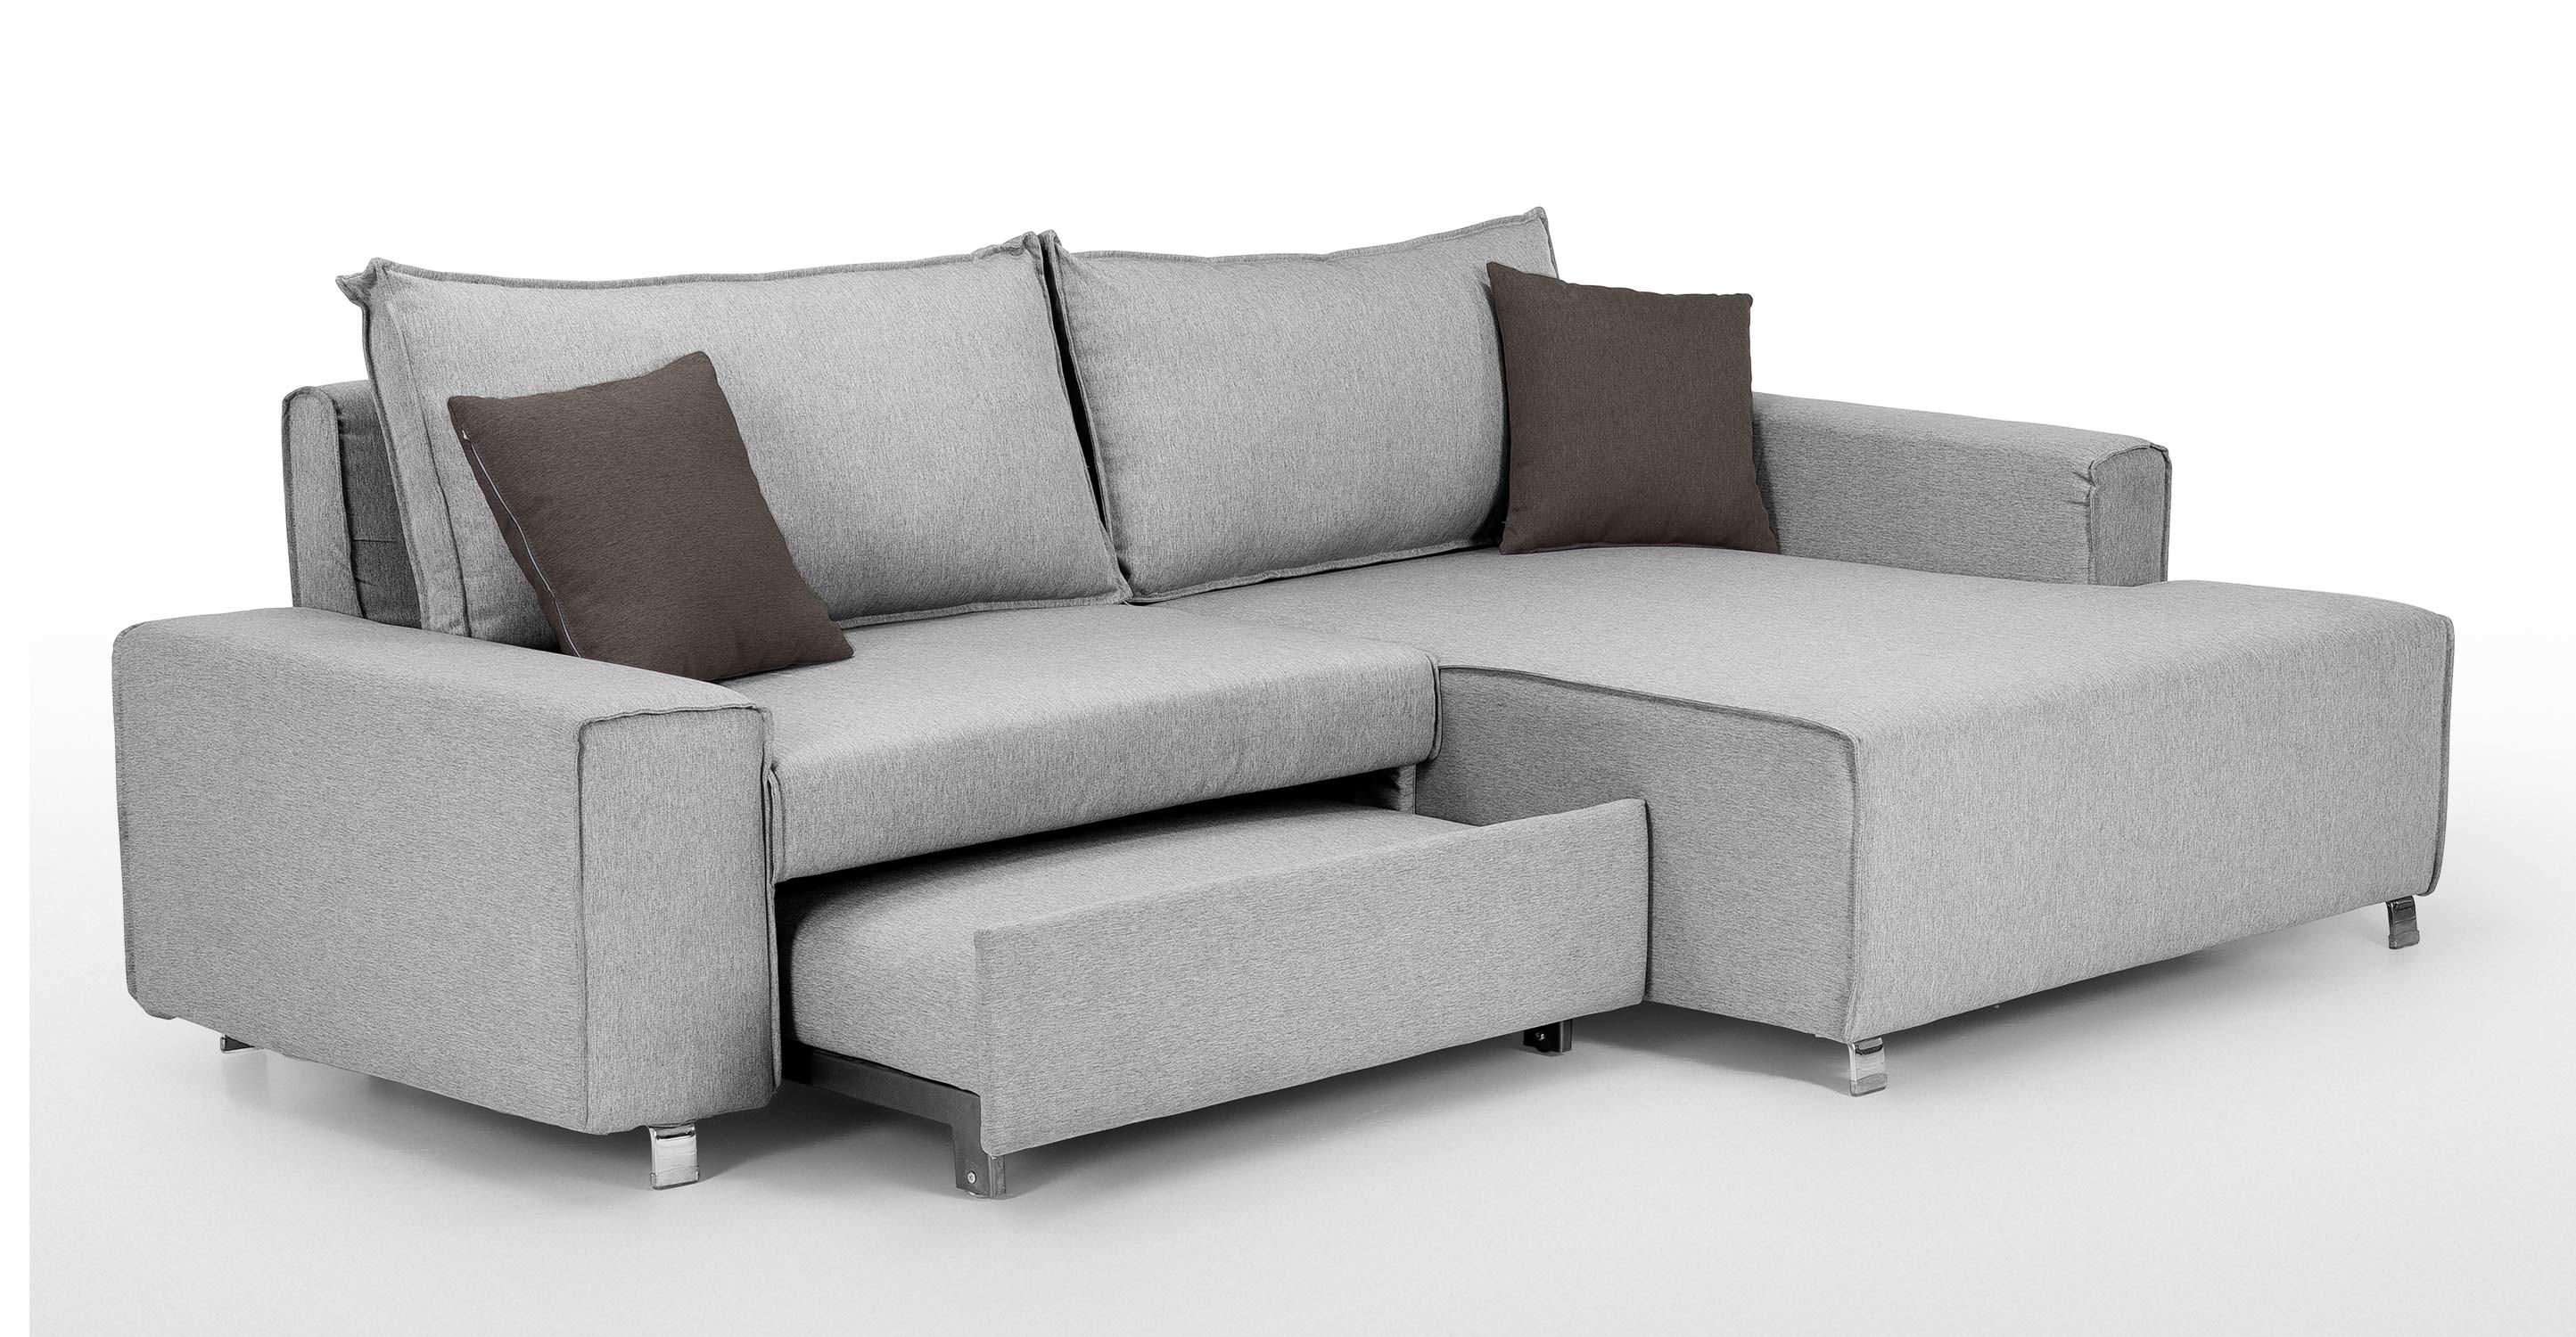 Sofas : Awesome Large Leather Corner Sofa 2 Seater Corner Sofa Pertaining To Sofa Corner Units (View 9 of 24)